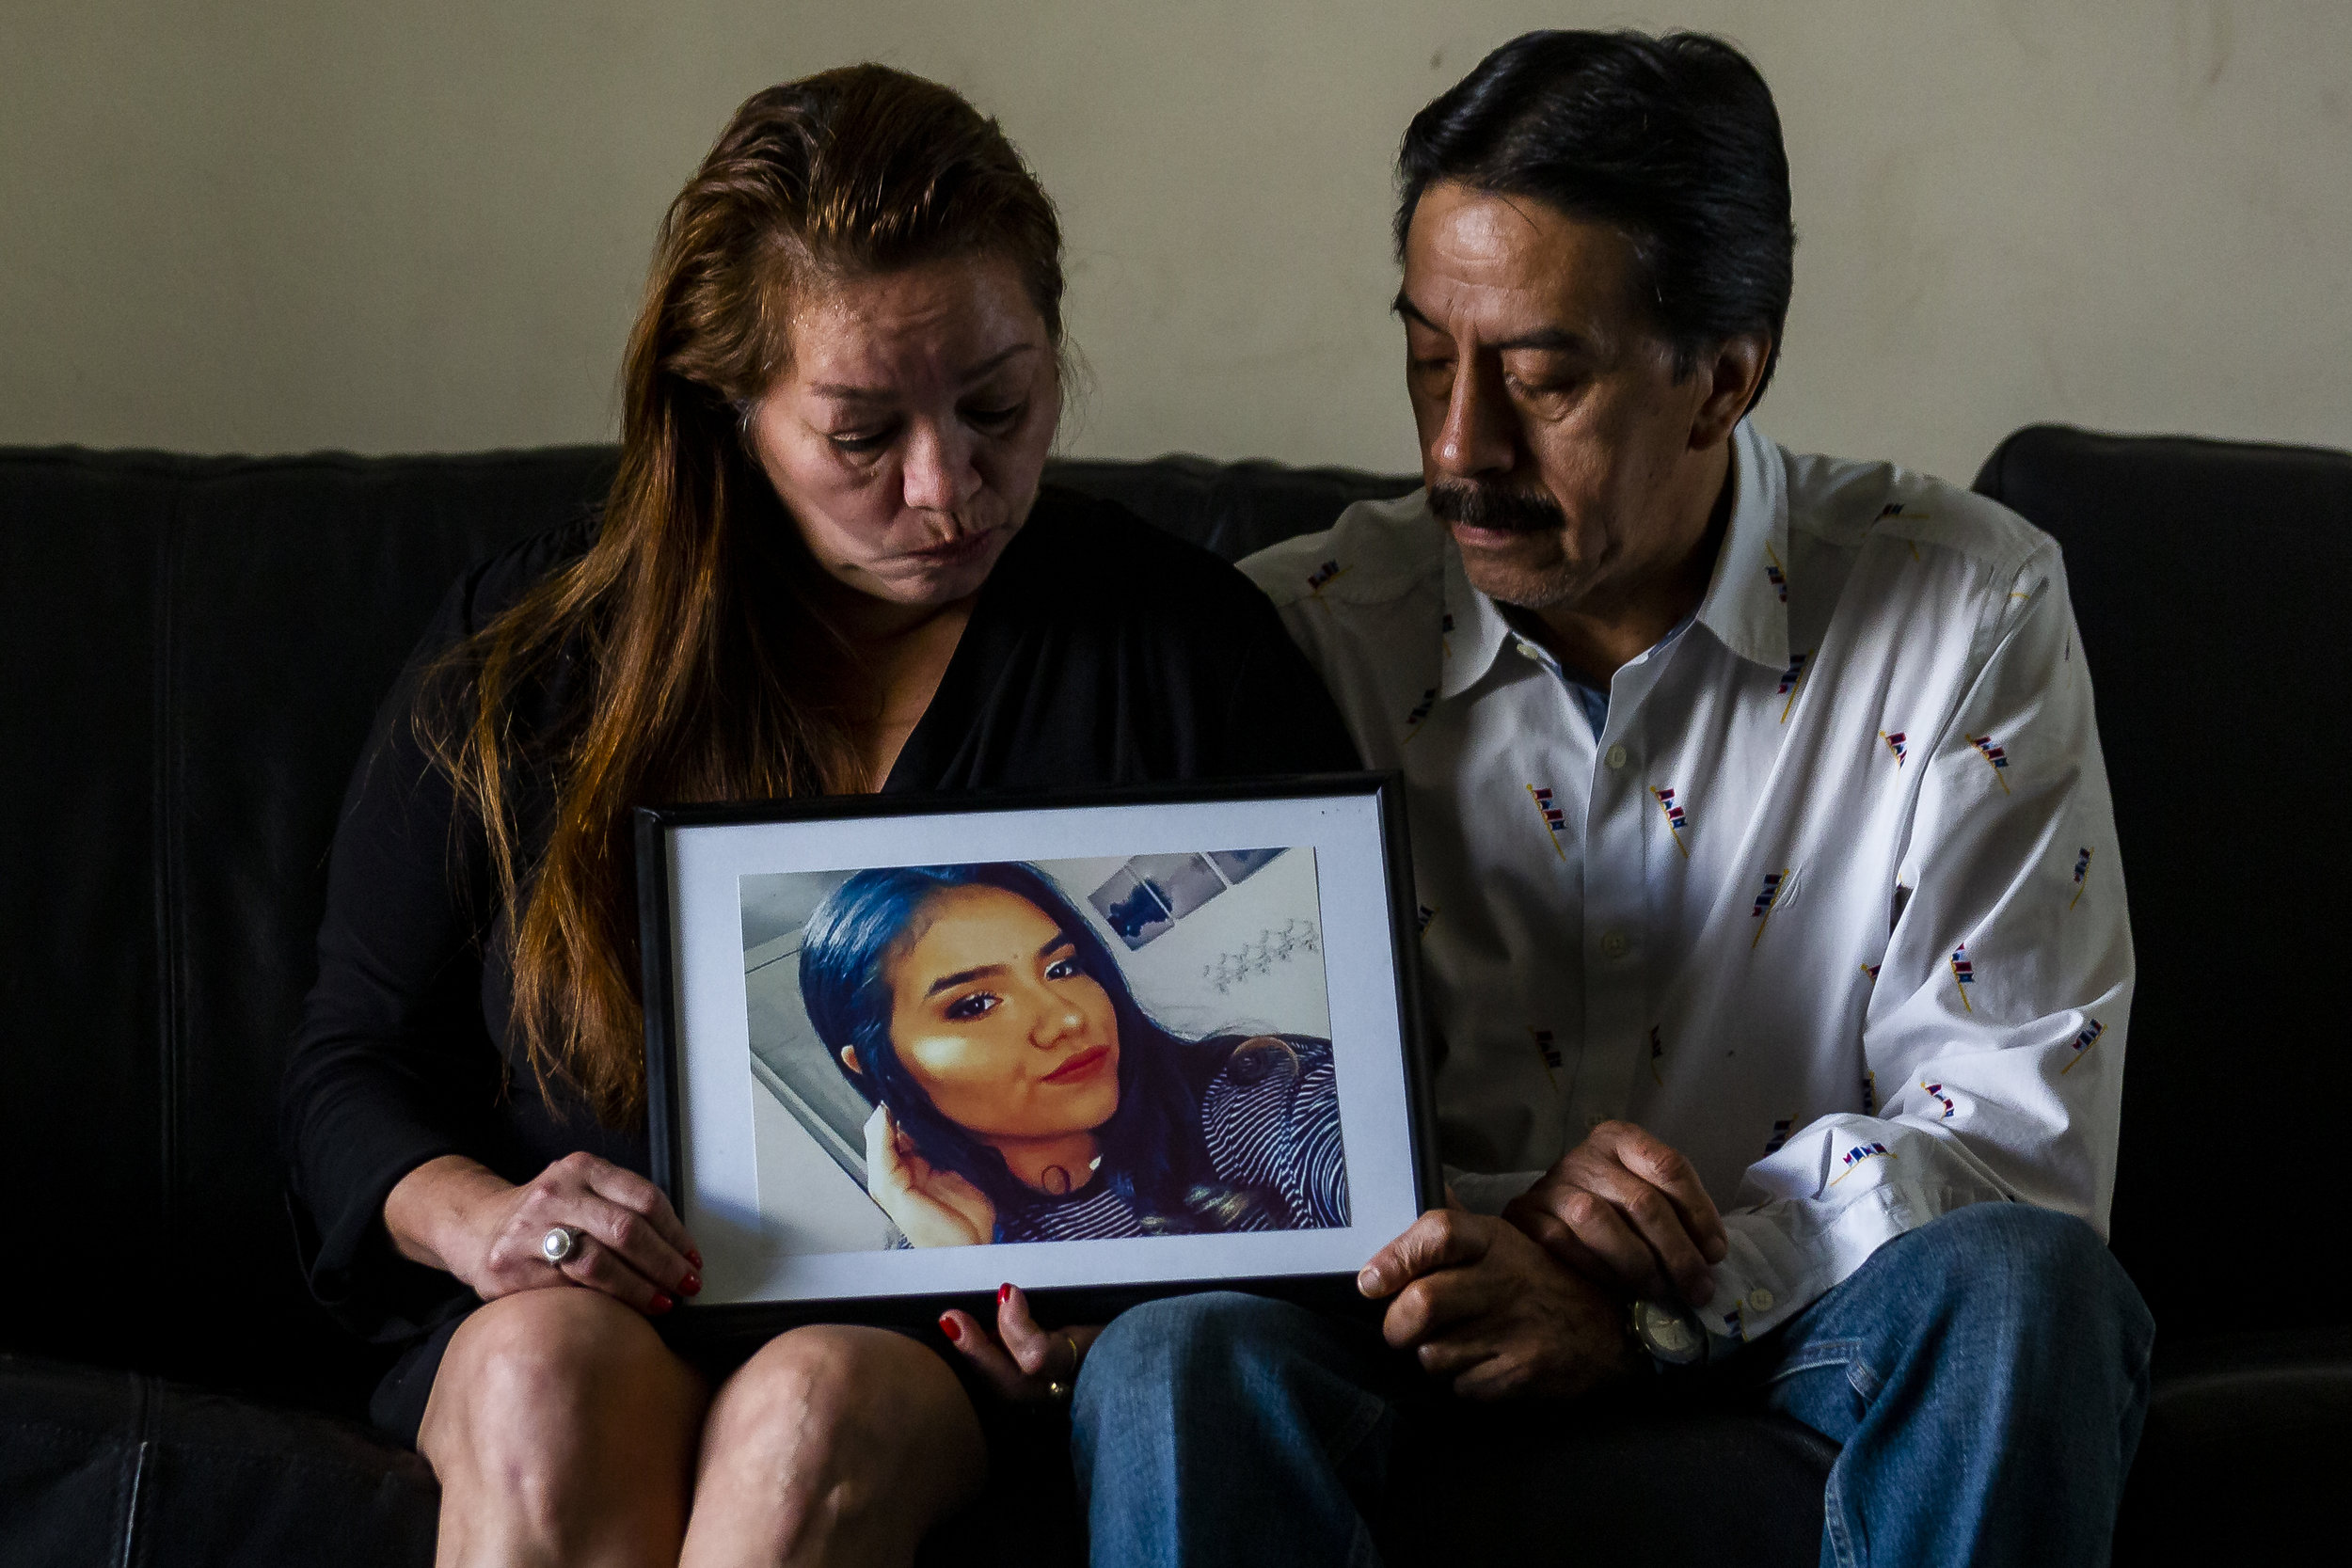 Gina Duran, left, and her husband, Orlando Duran, look at a photo of their daughter Alexa Duran at their home in Miami, Florida on Sunday, December 23, 2018. Alexa Duran, 18, was driving her father's car the day the FIU bridge collapsed. She was one of six people who died as a result of the accident.